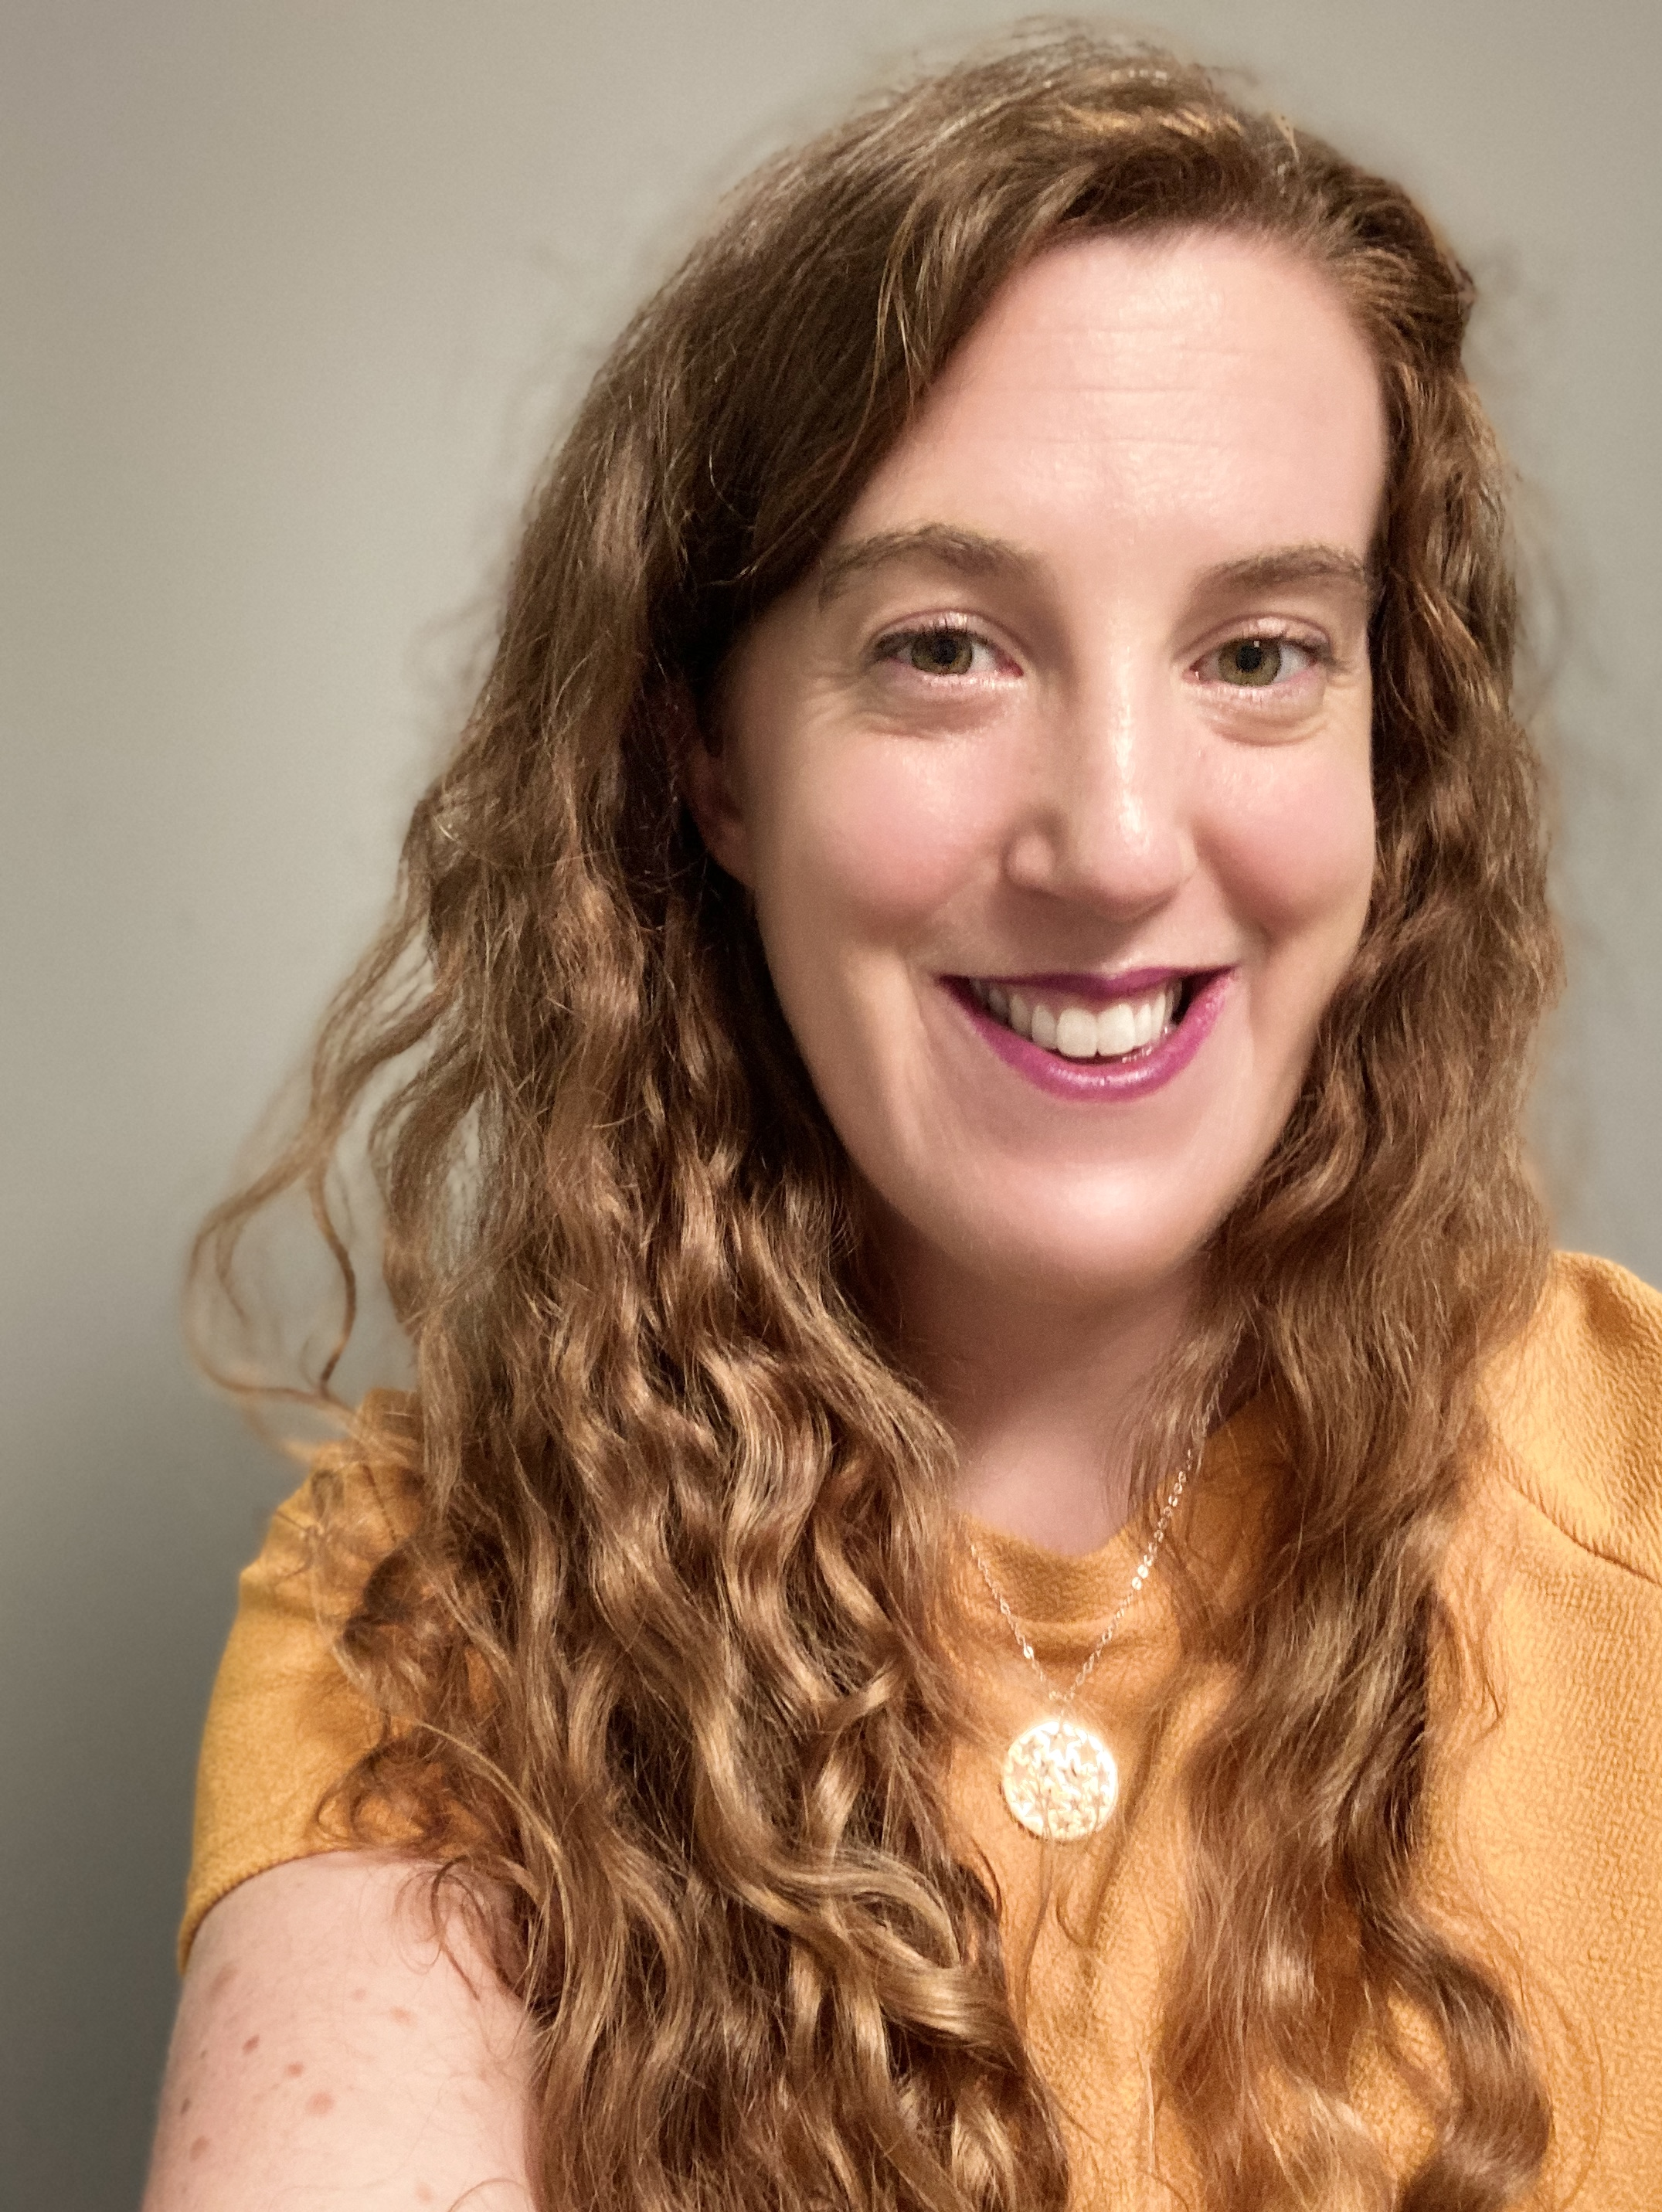 caitlin white, agency assistant, emerald city literary agency